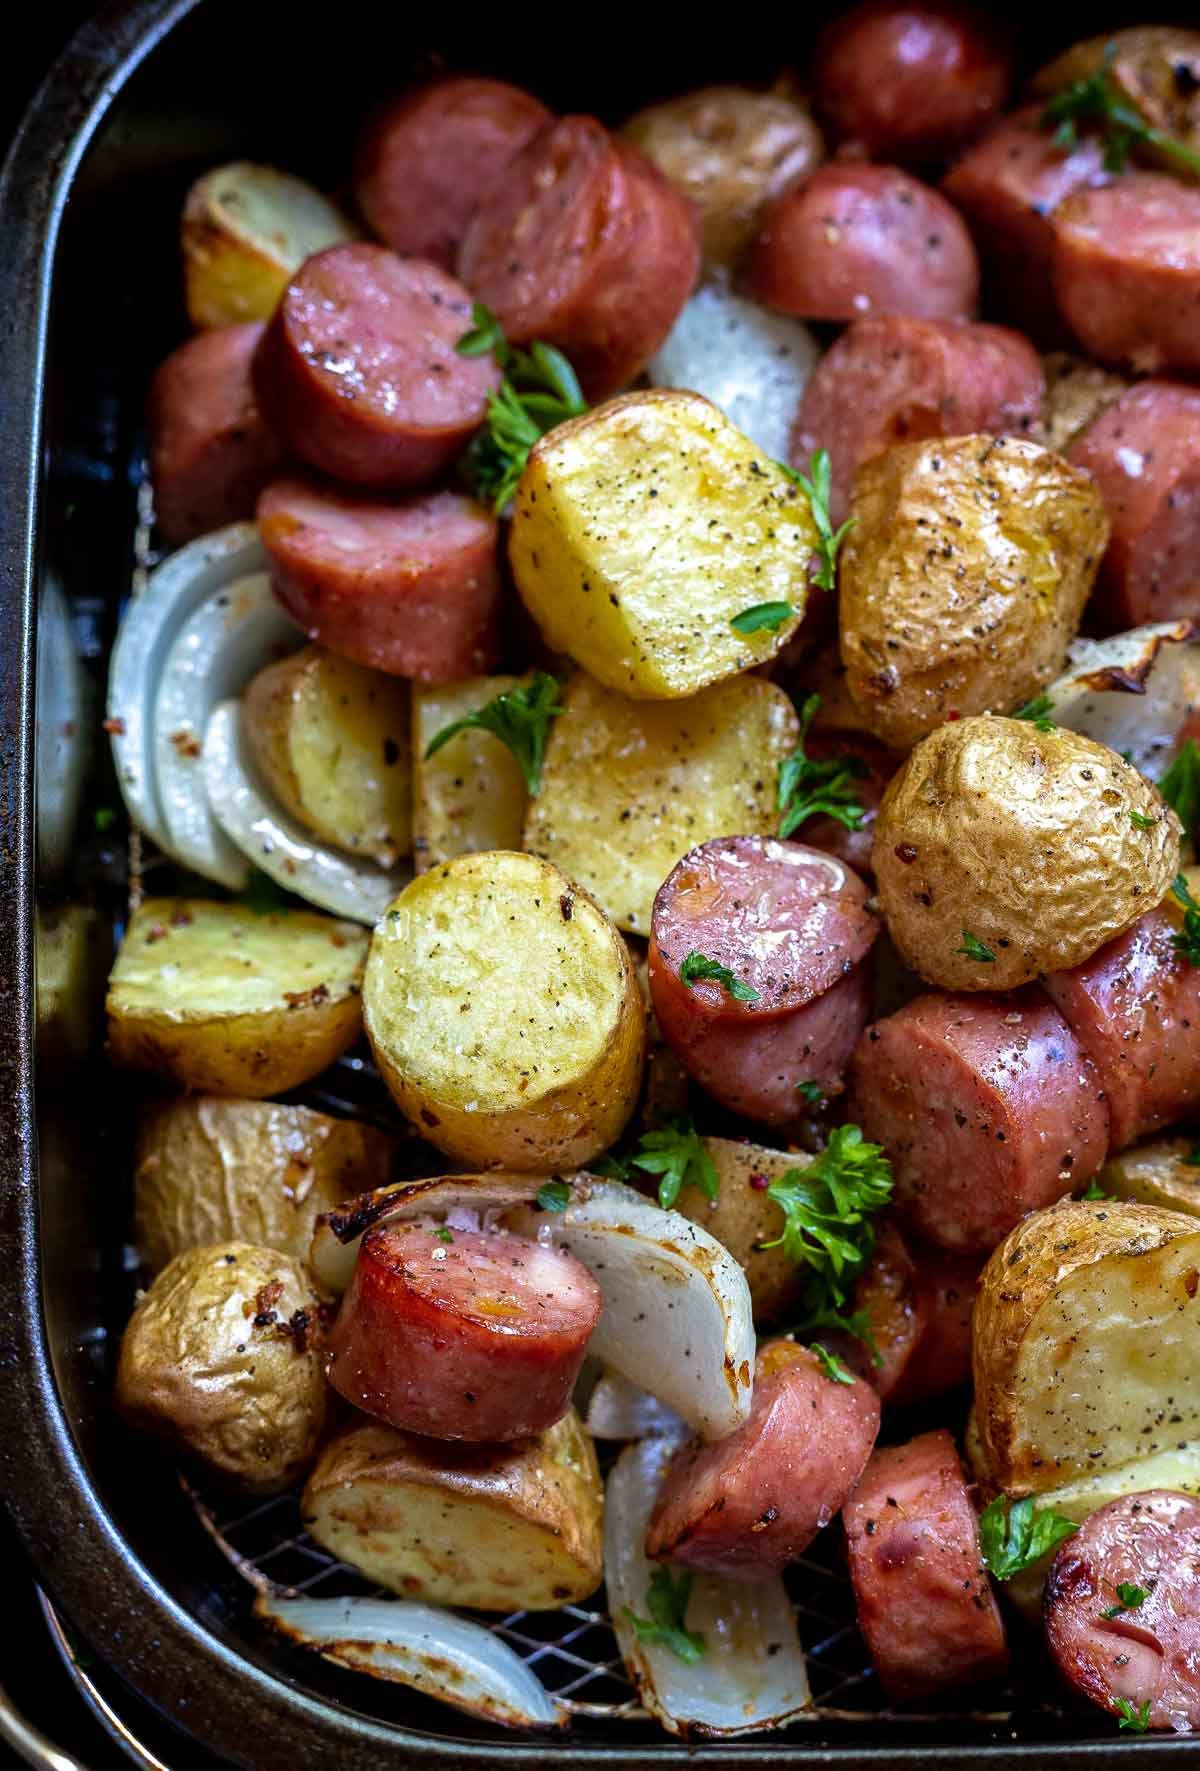 potatoes, sausage and onions in air fryer basket